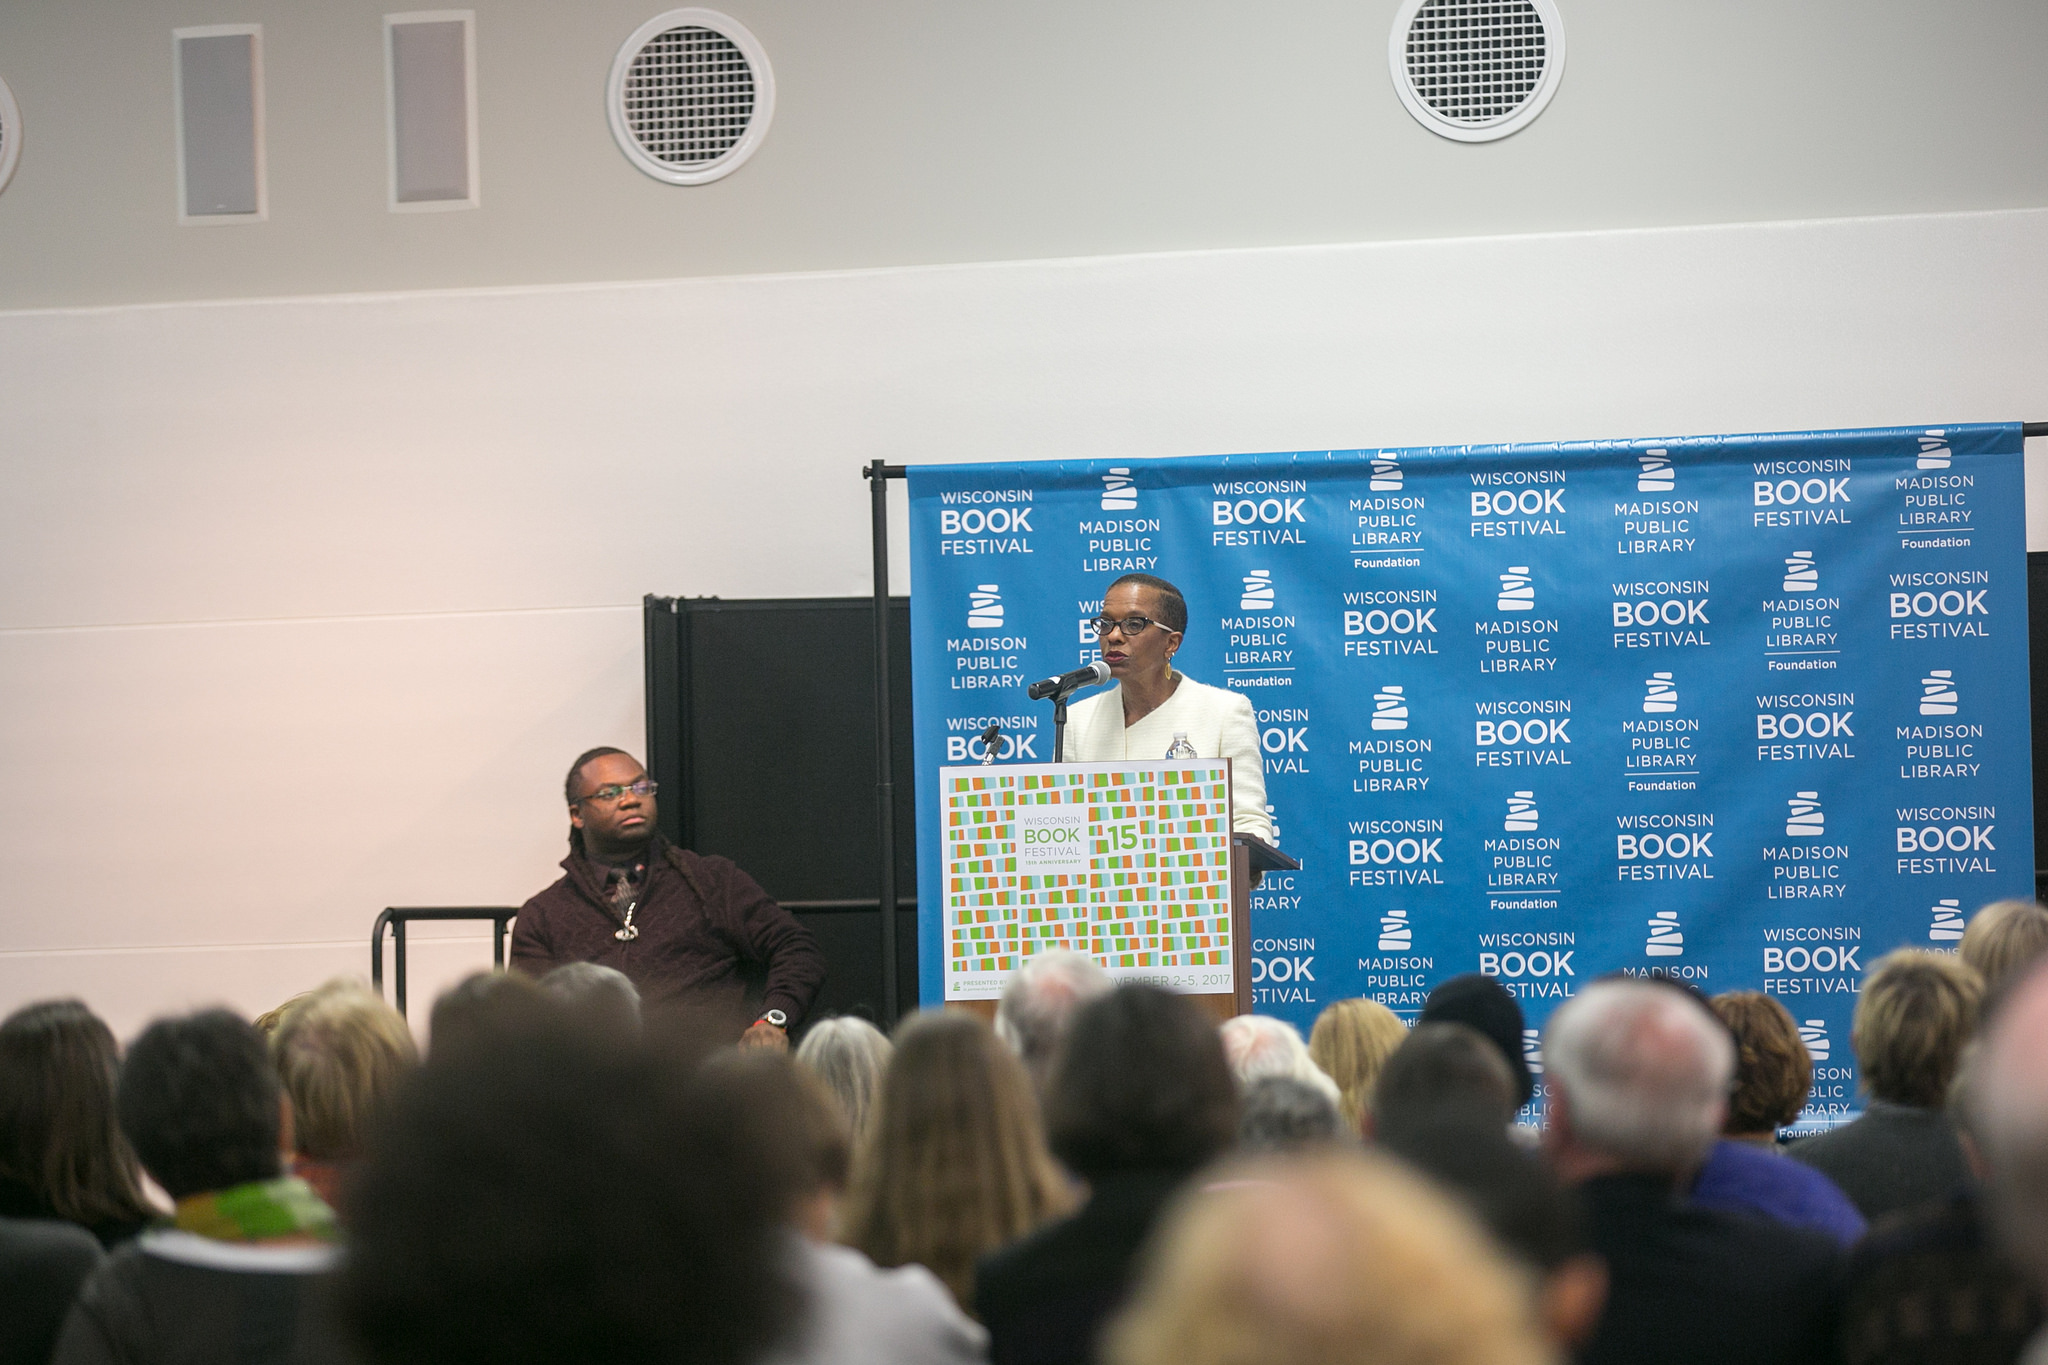 Photo of Angela speaking at a Wisconsin Book Festival event